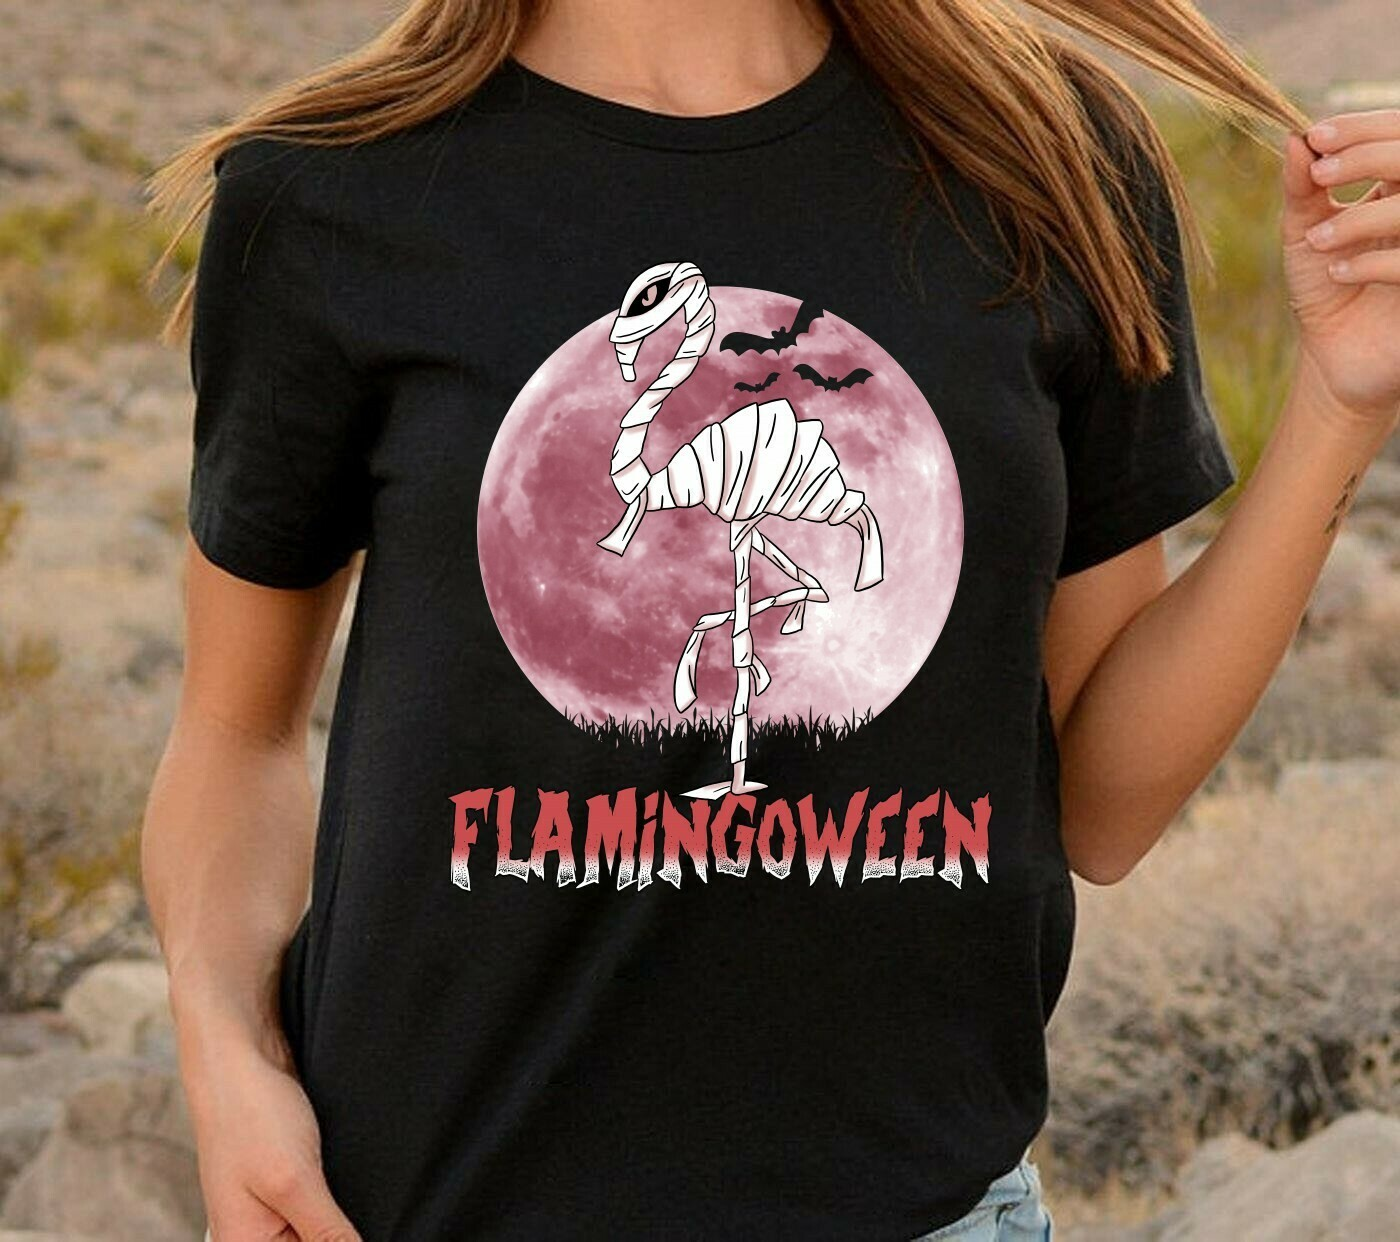 Flamingoween Mummy Flamingo In Moonlight Not So Scary Gift for Loves Halloween Day Family Vacation Team Party Gifts T-Shirt Long Sleeve Sweatshirt Hoodie Jolly Family Gifts